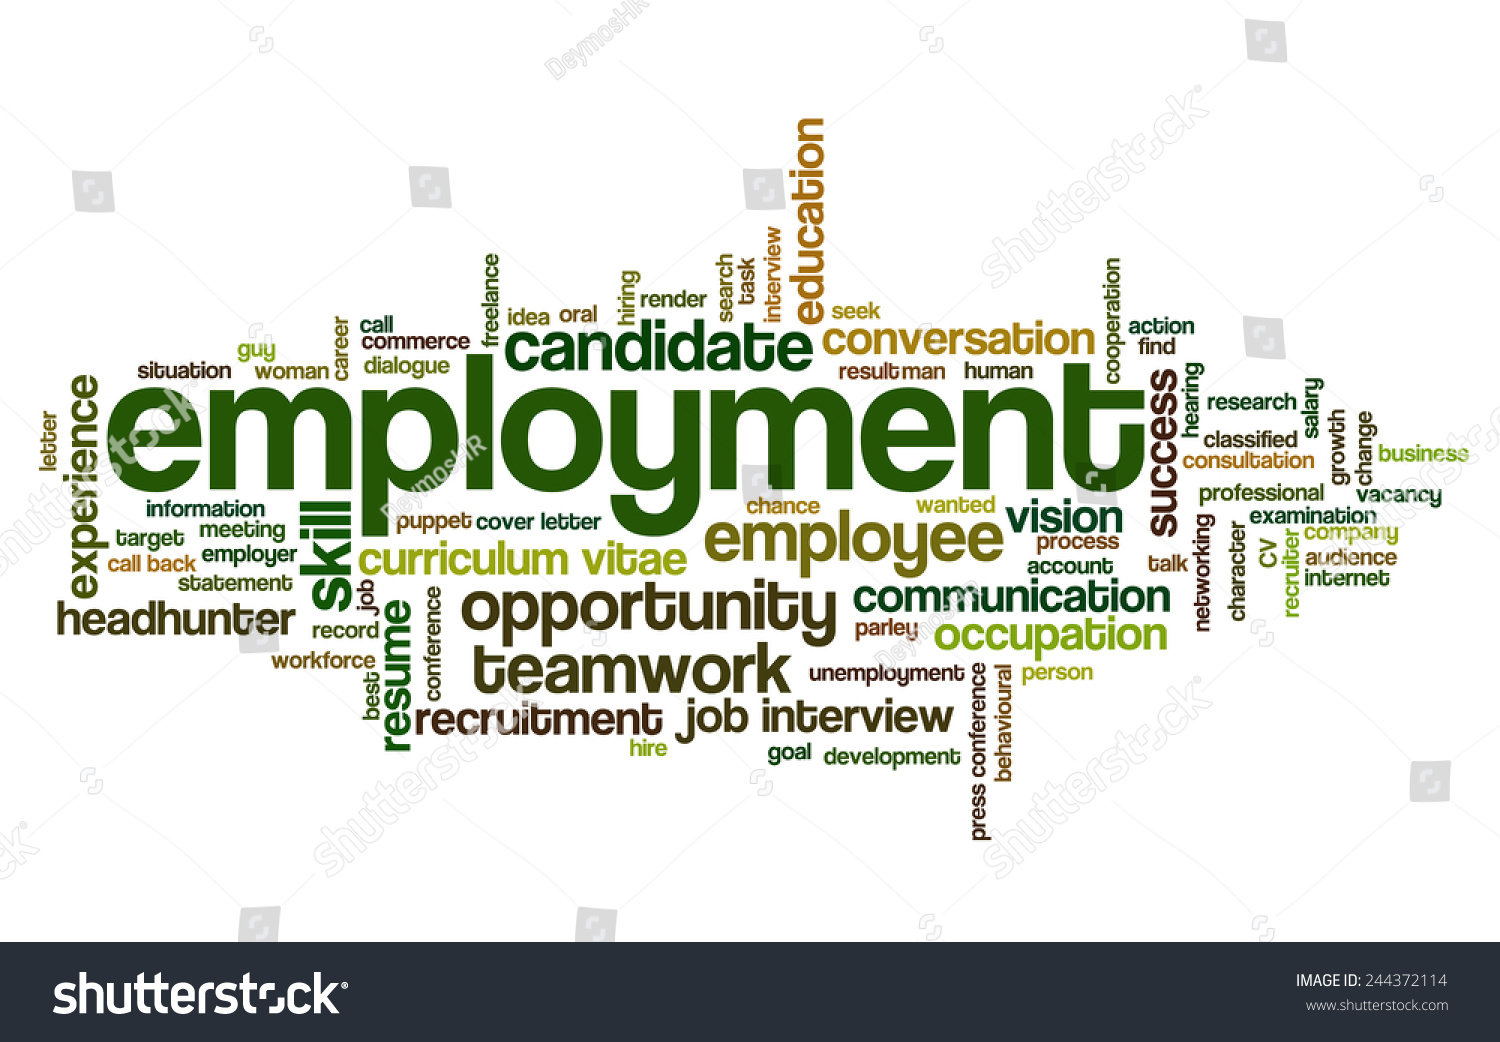 word cloud related job interview employment stock vector 244372114 word cloud related to job interview employment and recruitment